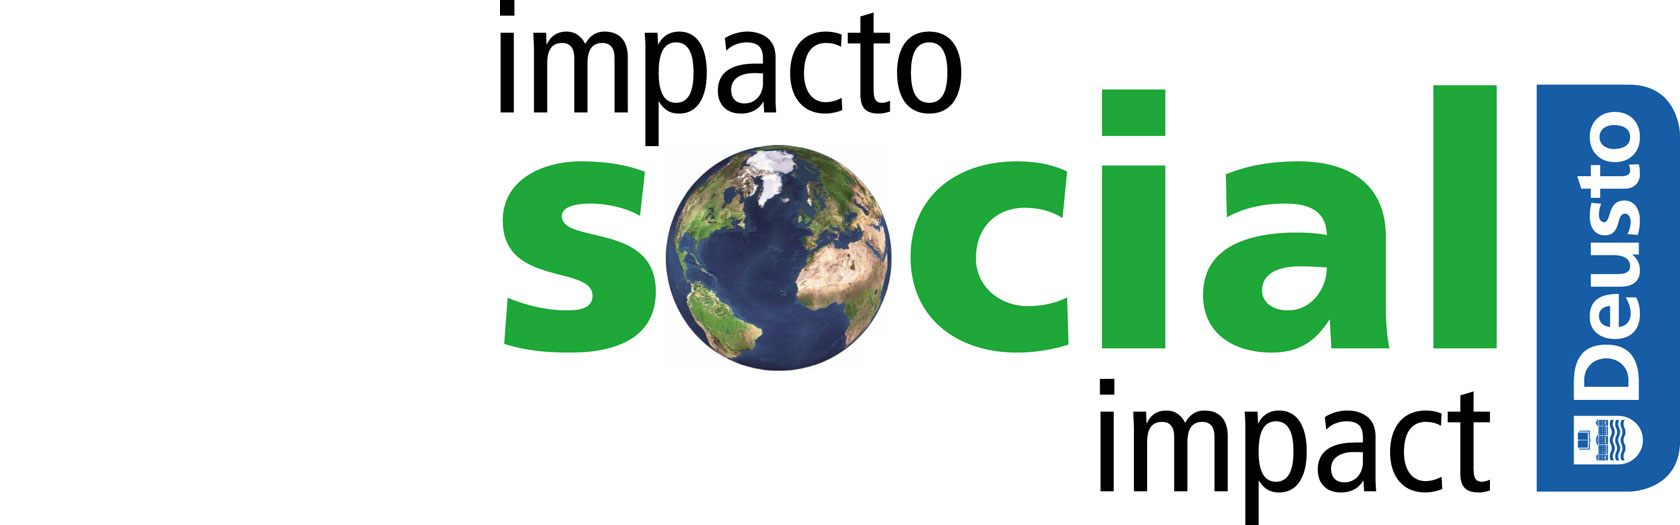 Label Deusto Research Social Impact